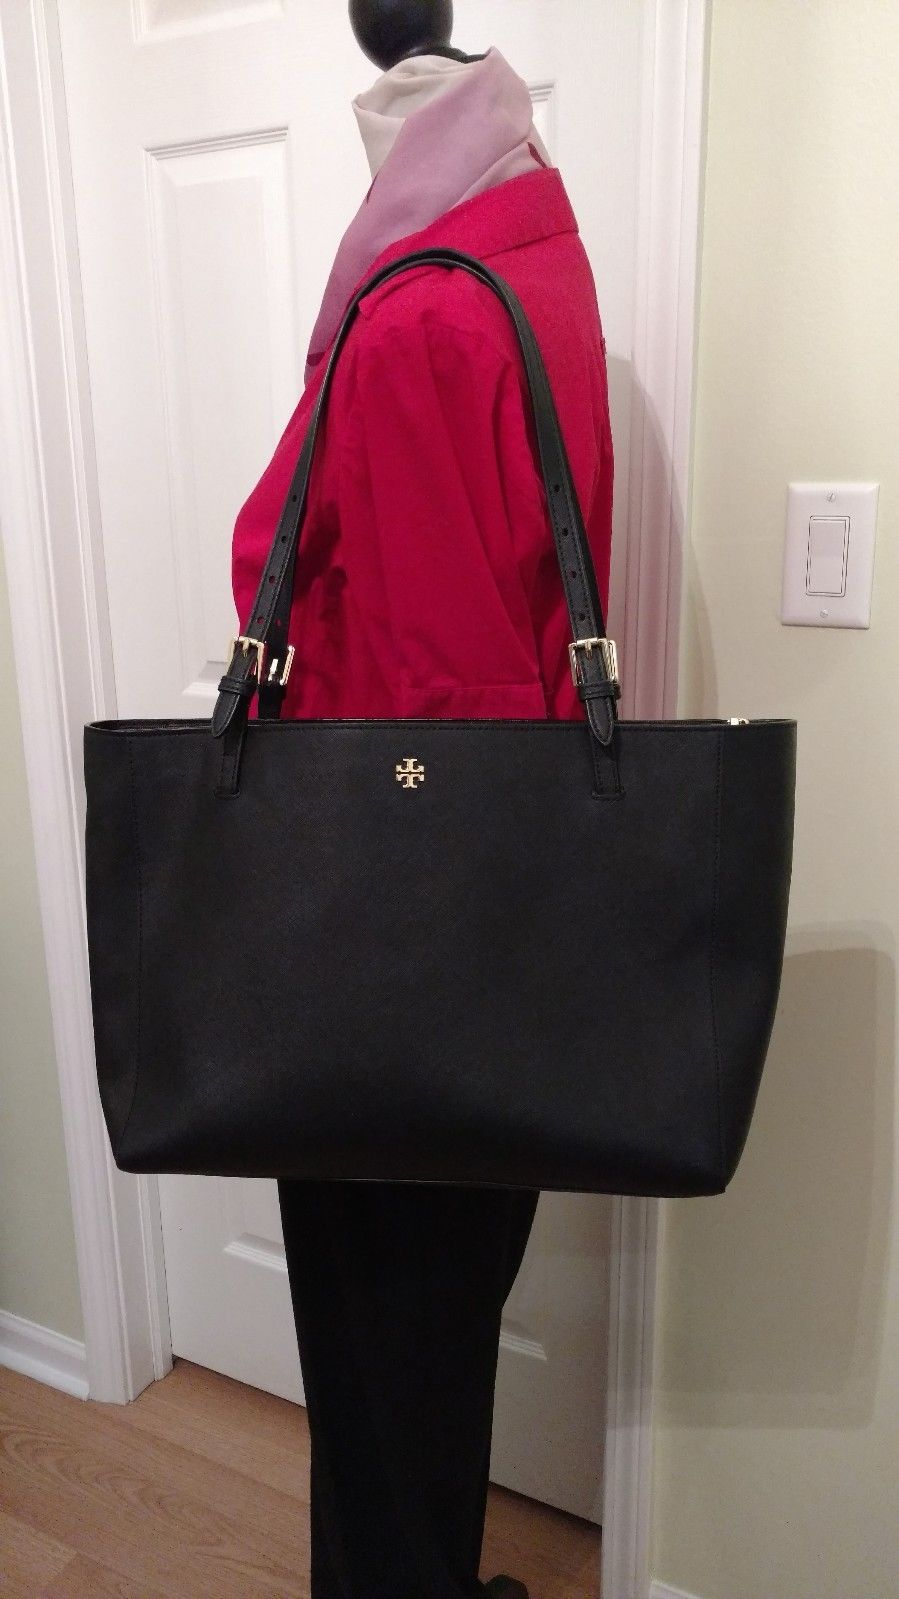 901ce5cf9c07 Tory Burch Large York Buckle Tote in Black Saffiano Leather MSRP  295